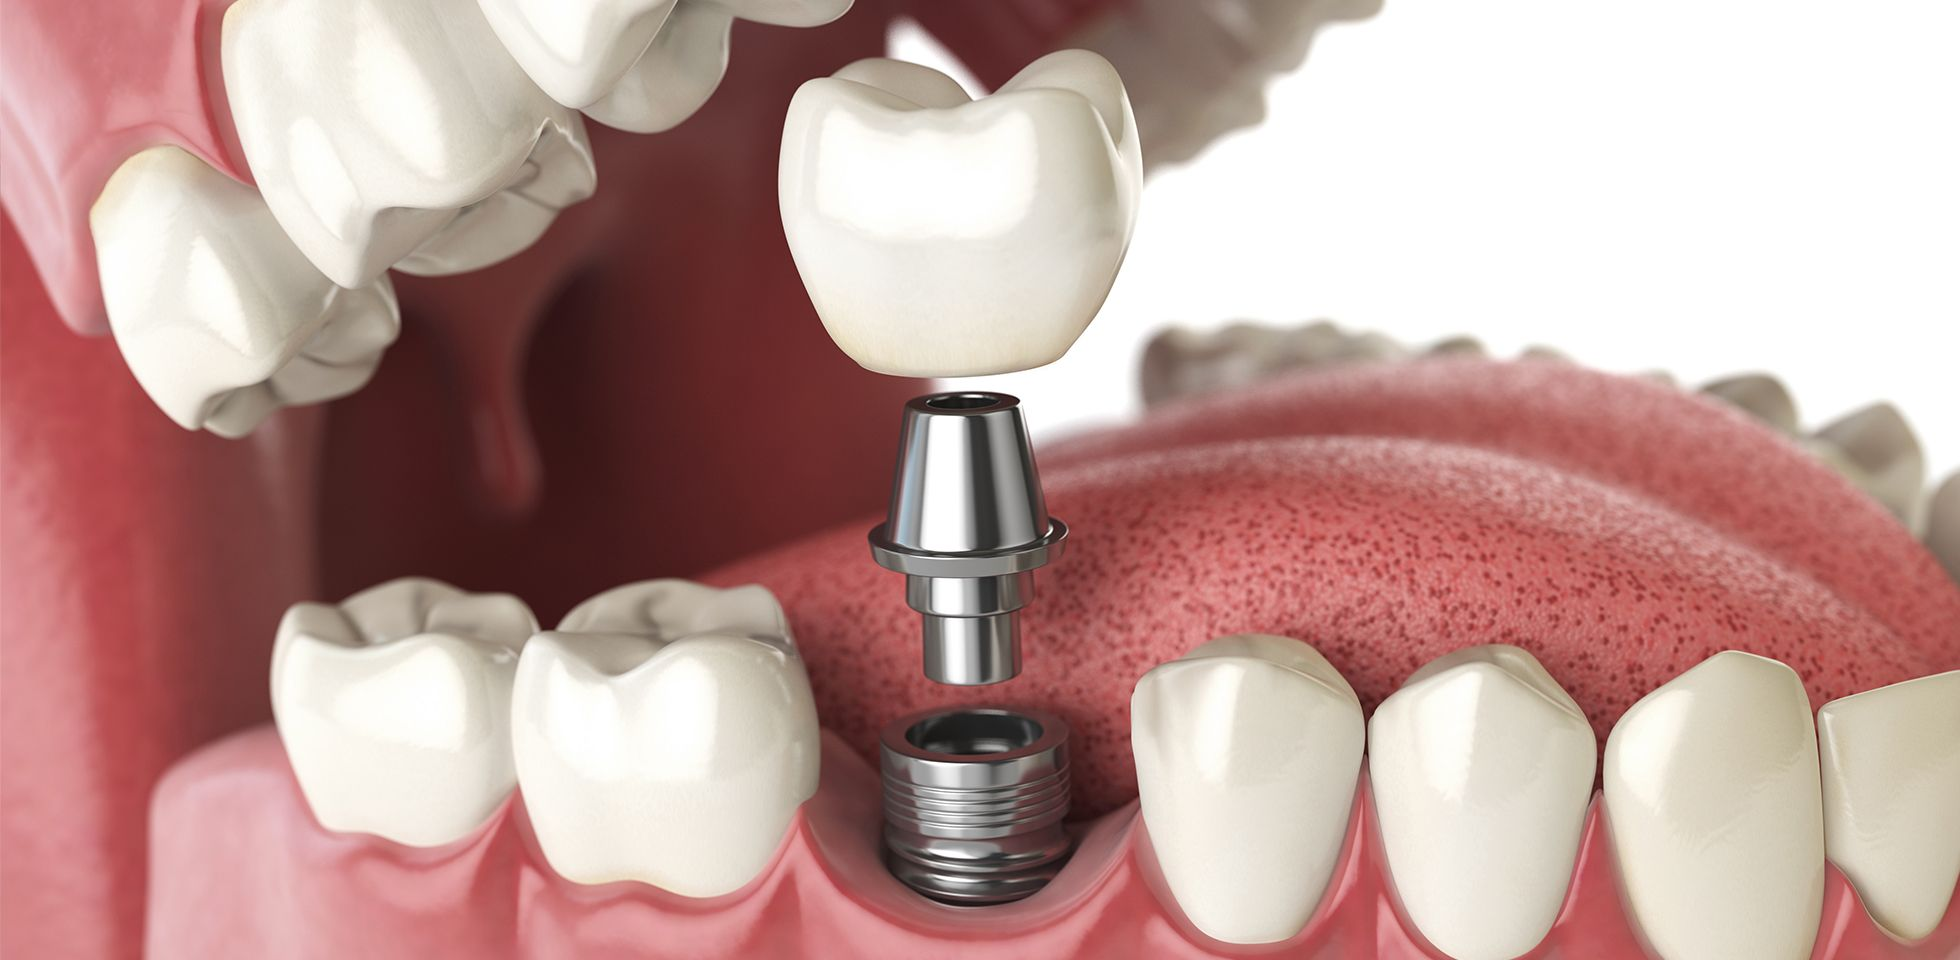 dental implants worcester ma